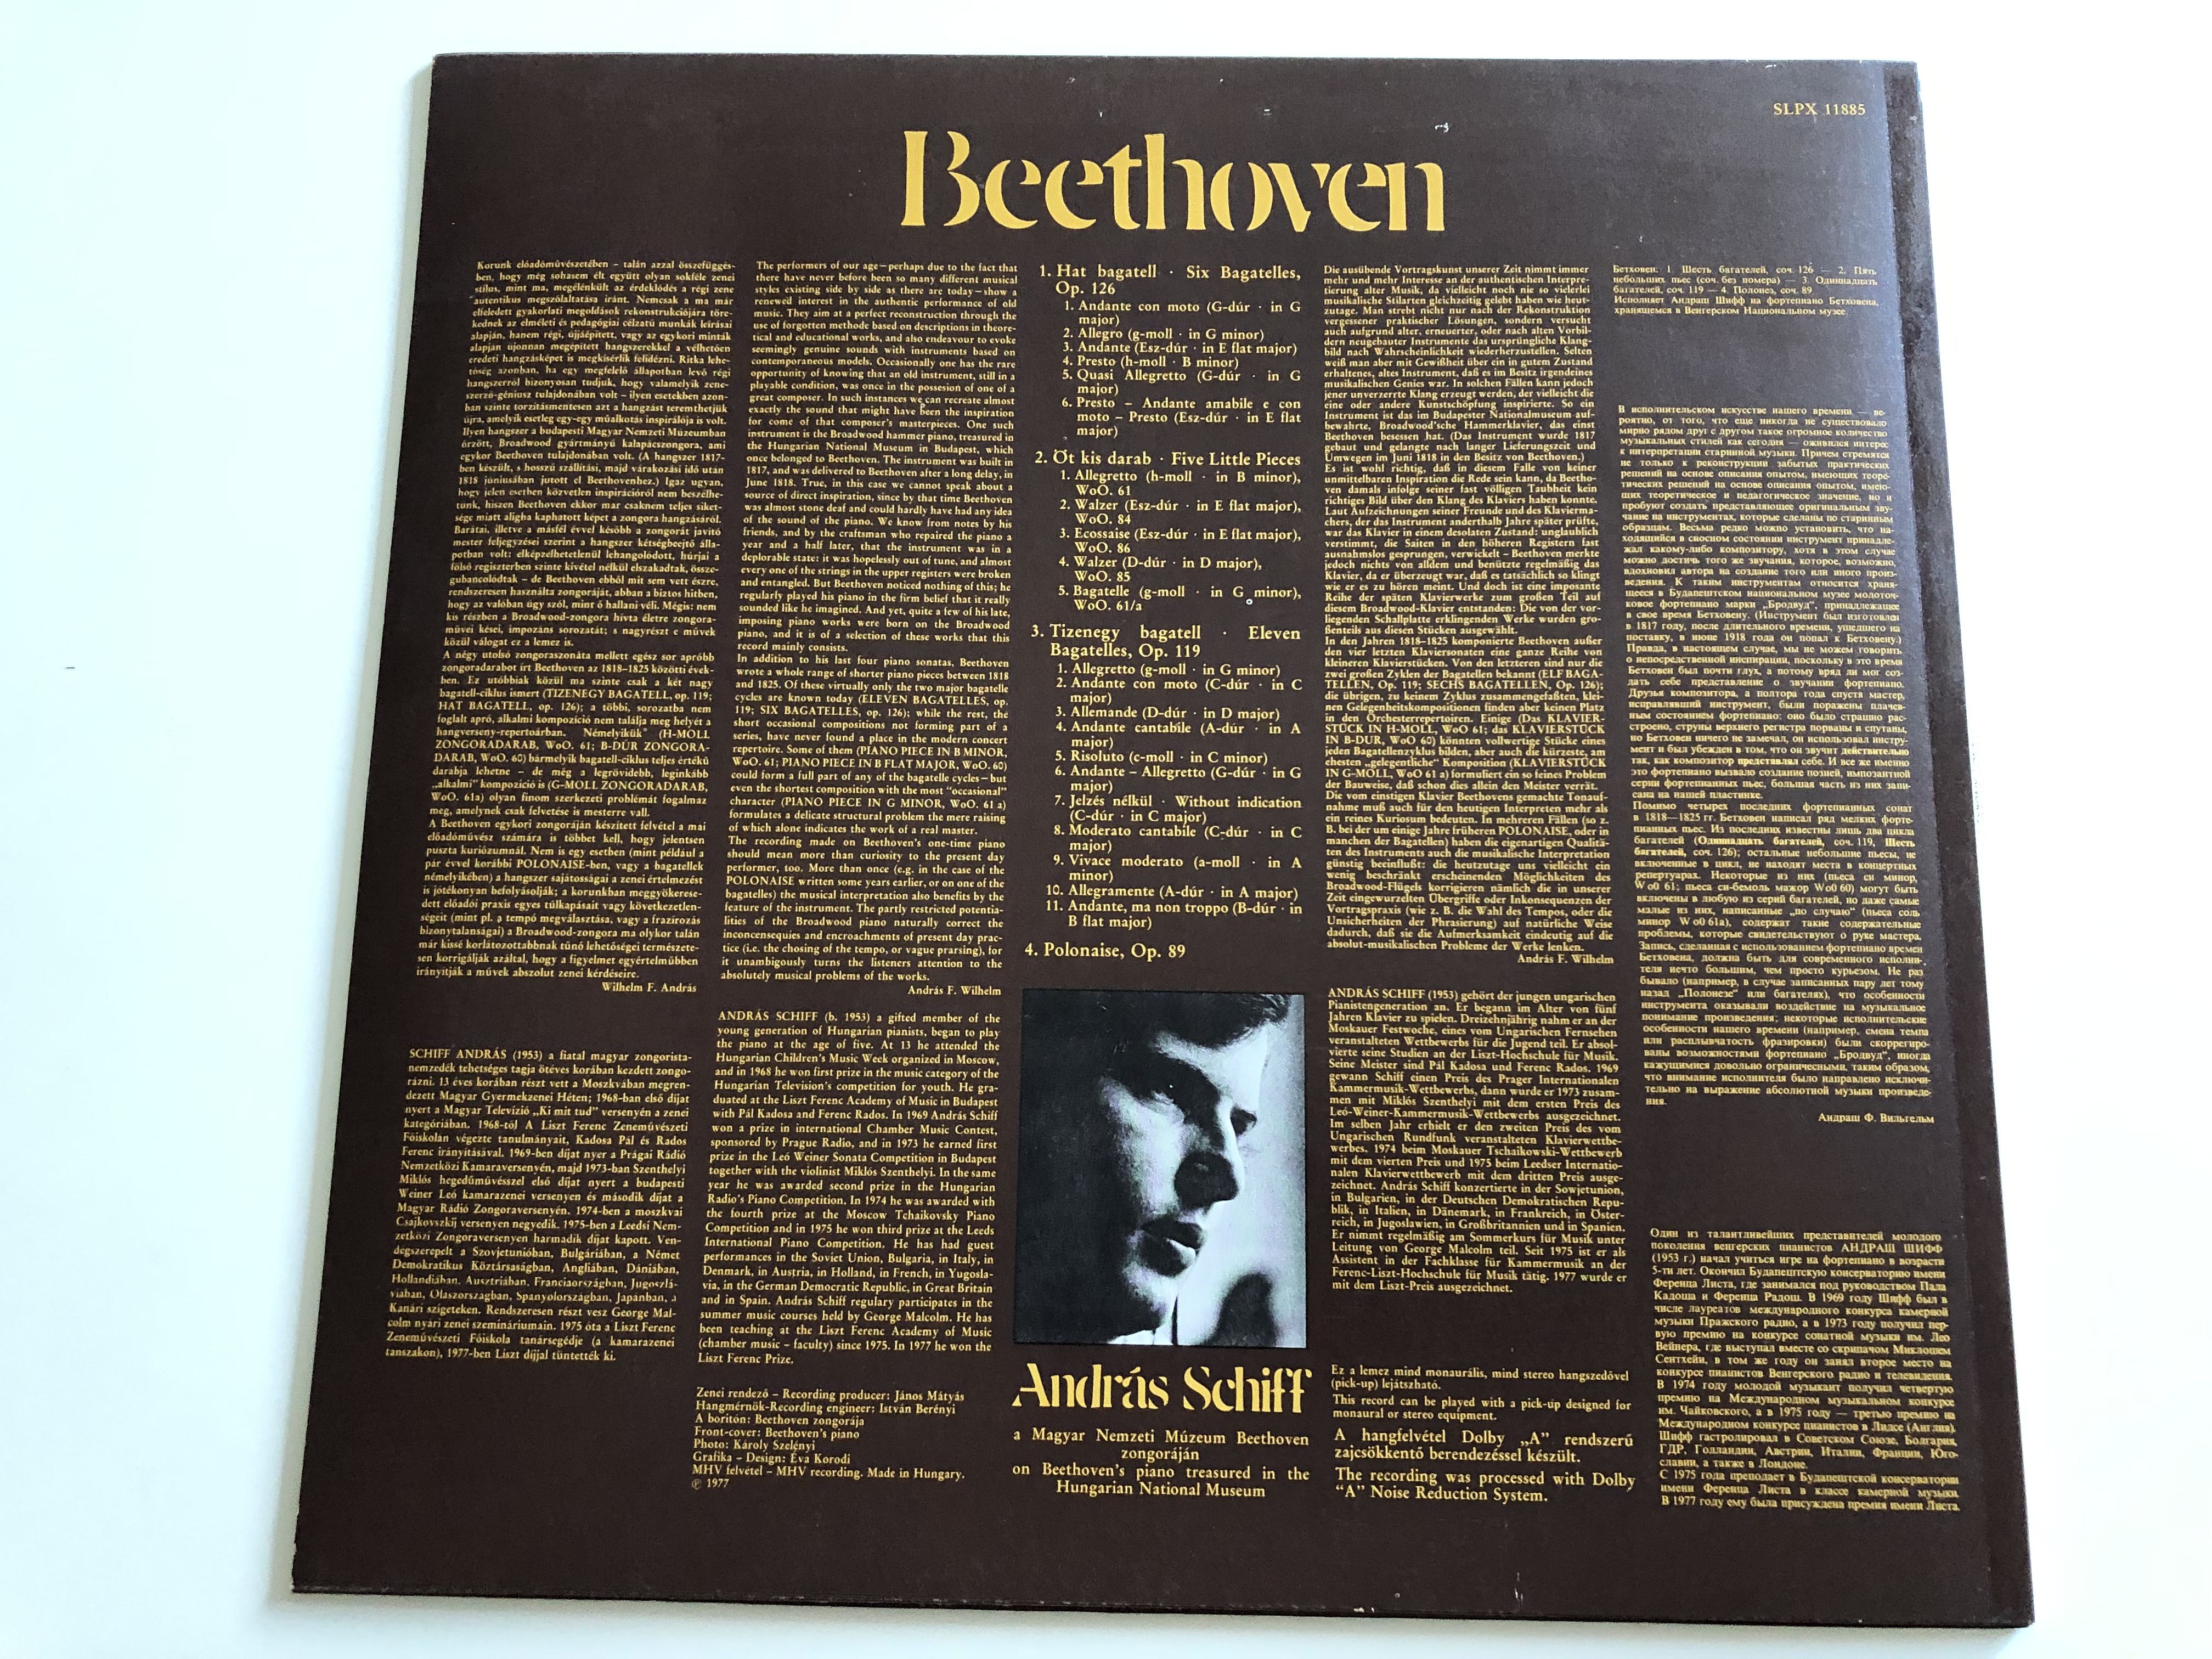 beethoven-bagatelles-op.-119-126-five-little-pieces-woo-polonaise-op.-89-andr-s-schiff-on-beethoven-s-piano-hungaroton-lp-stereo-mono-slpx-11885-2-.jpg